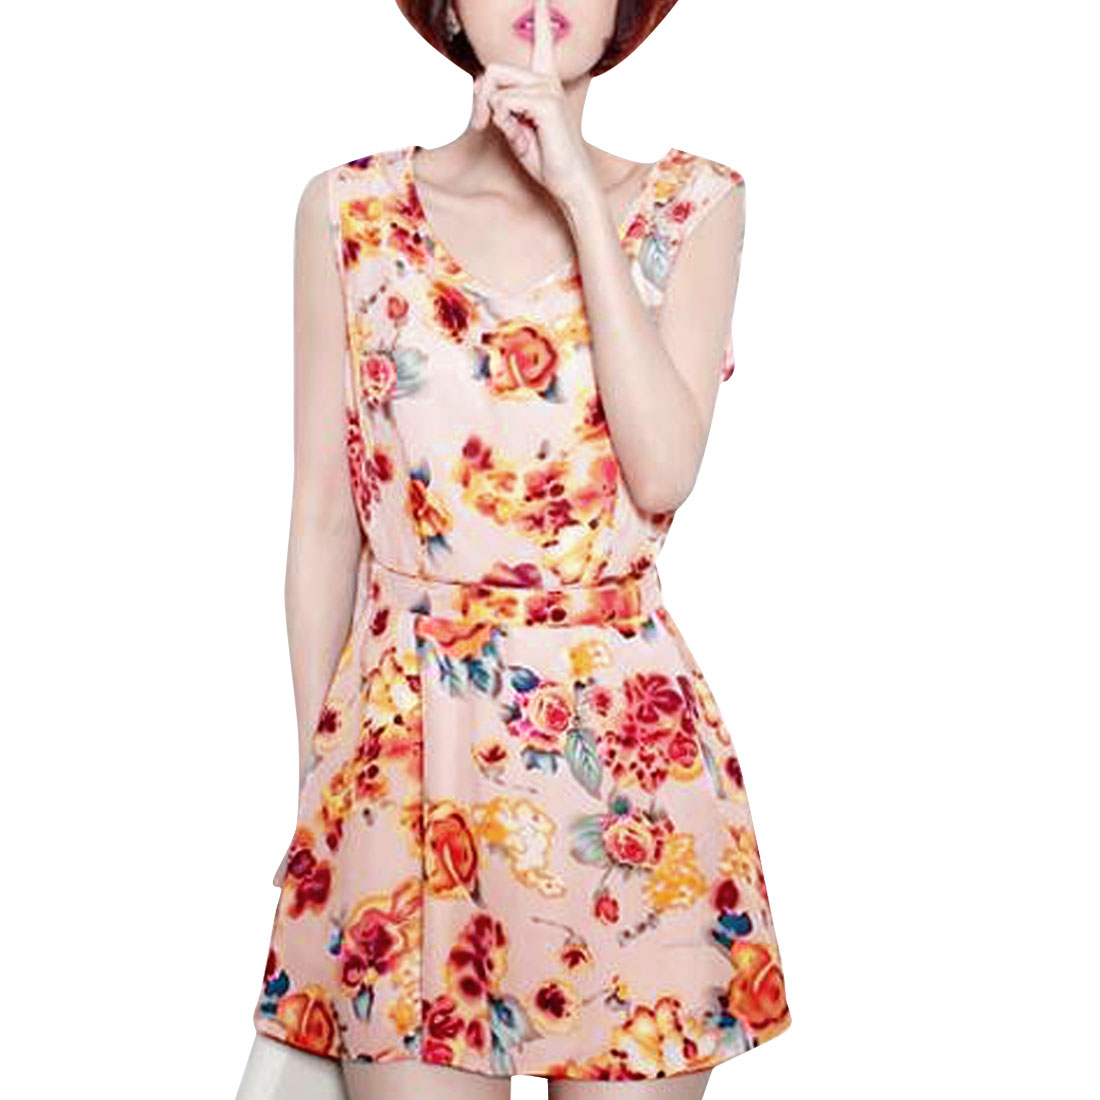 Lady Pink Round Neck Flower Prints Loose Belted Mini Dress XS